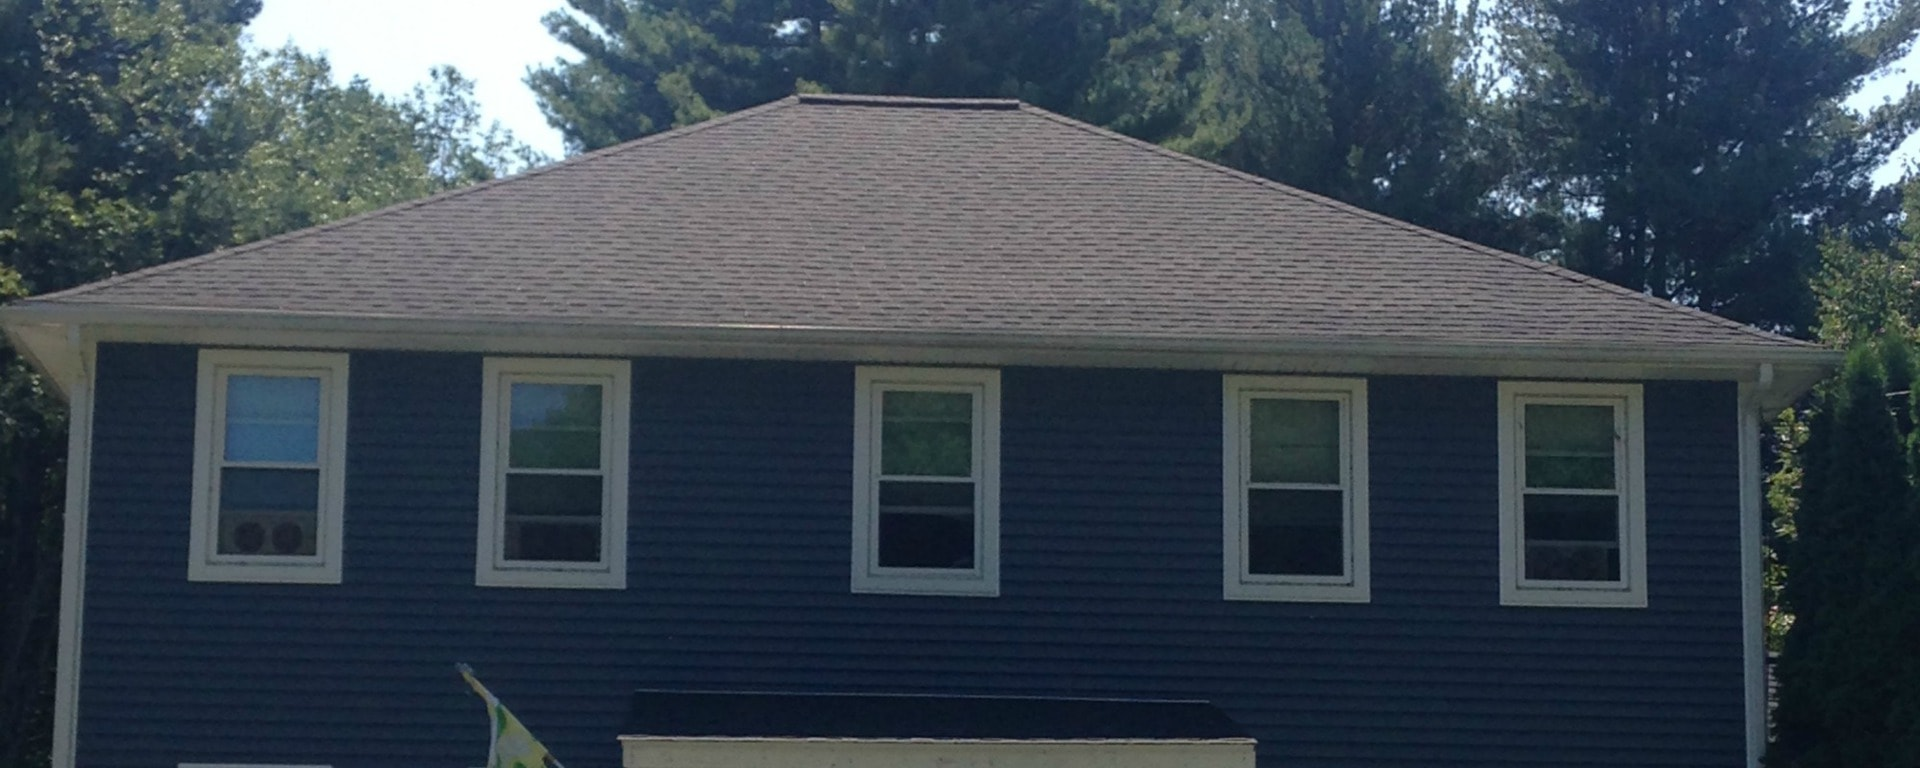 Roofing Company Webster MA & roofing-company-webster-ma-bg | David Barbale memphite.com